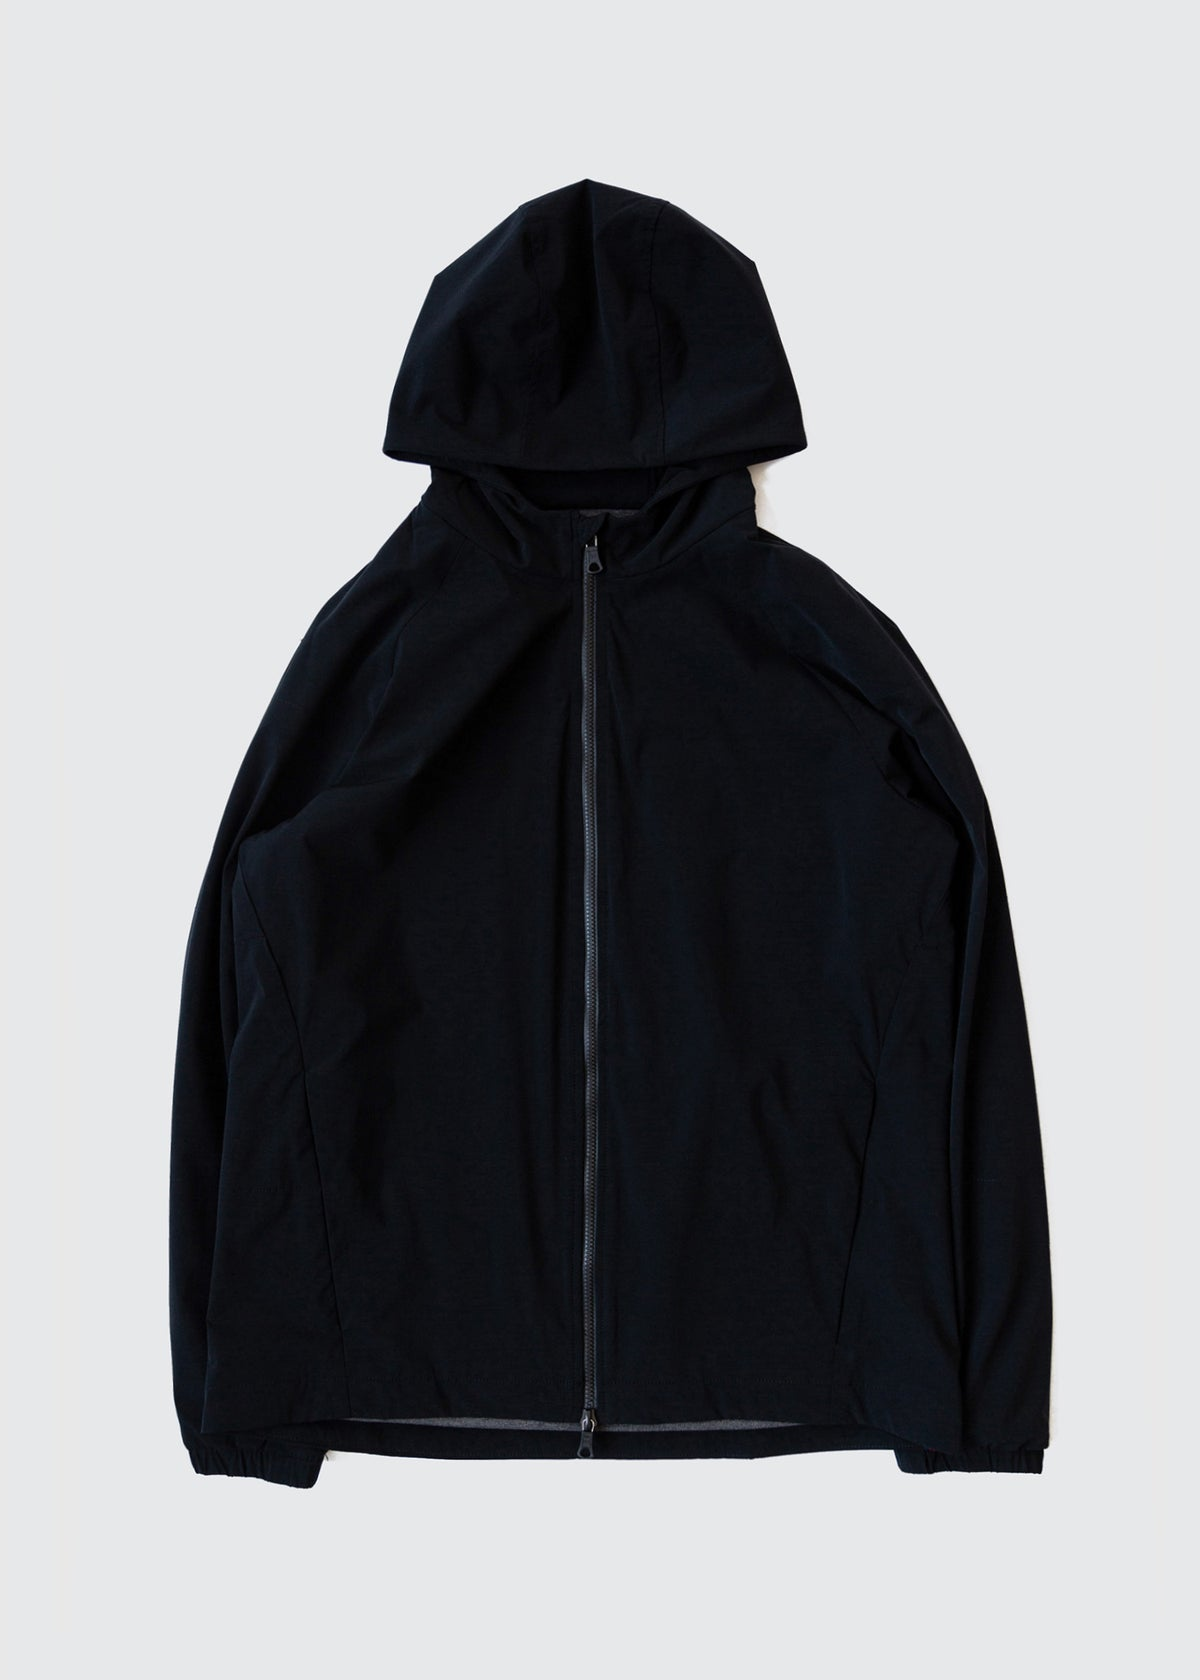 301 - QUILTED HOODED ZIP - BLACK - Wilson & Willy's - MPLS Neighbor Goods